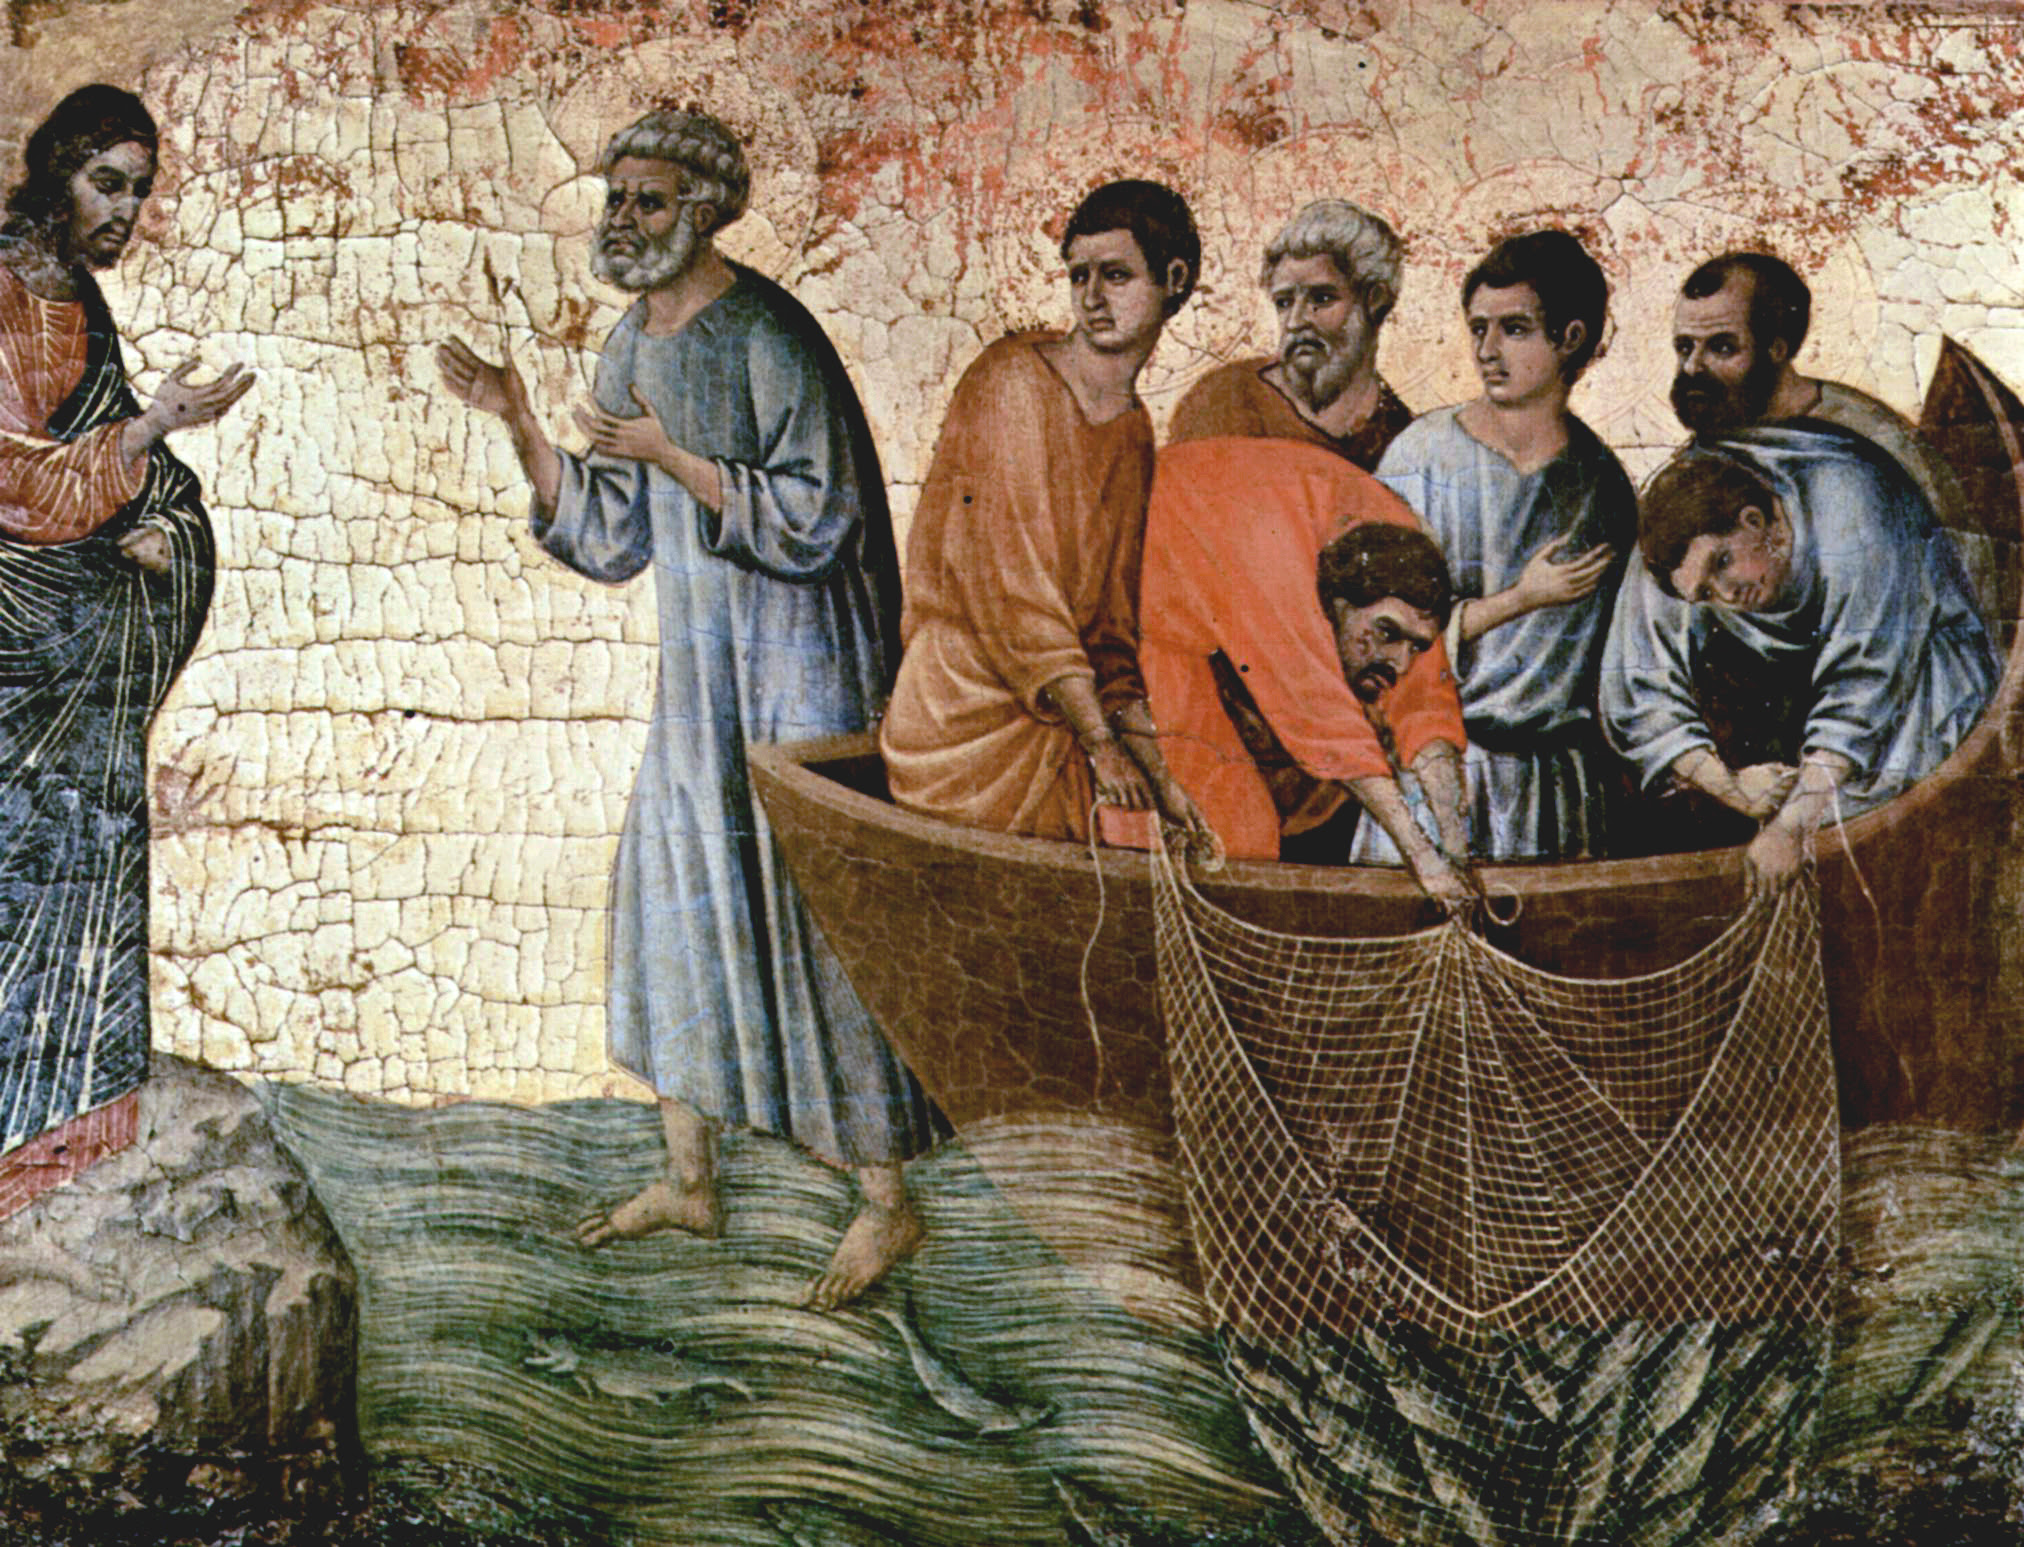 Duccio, di Buoninsegna, d. 1319. Jesus Appears on Lake Tiberias, from Art in the Christian Tradition, a project of the Vanderbilt Divinity Library, Nashville, TN. http://diglib.library.vanderbilt.edu/act-imagelink.pl?RC=49155 [retrieved May 1, 2019]. Original source: www.yorckproject.de.